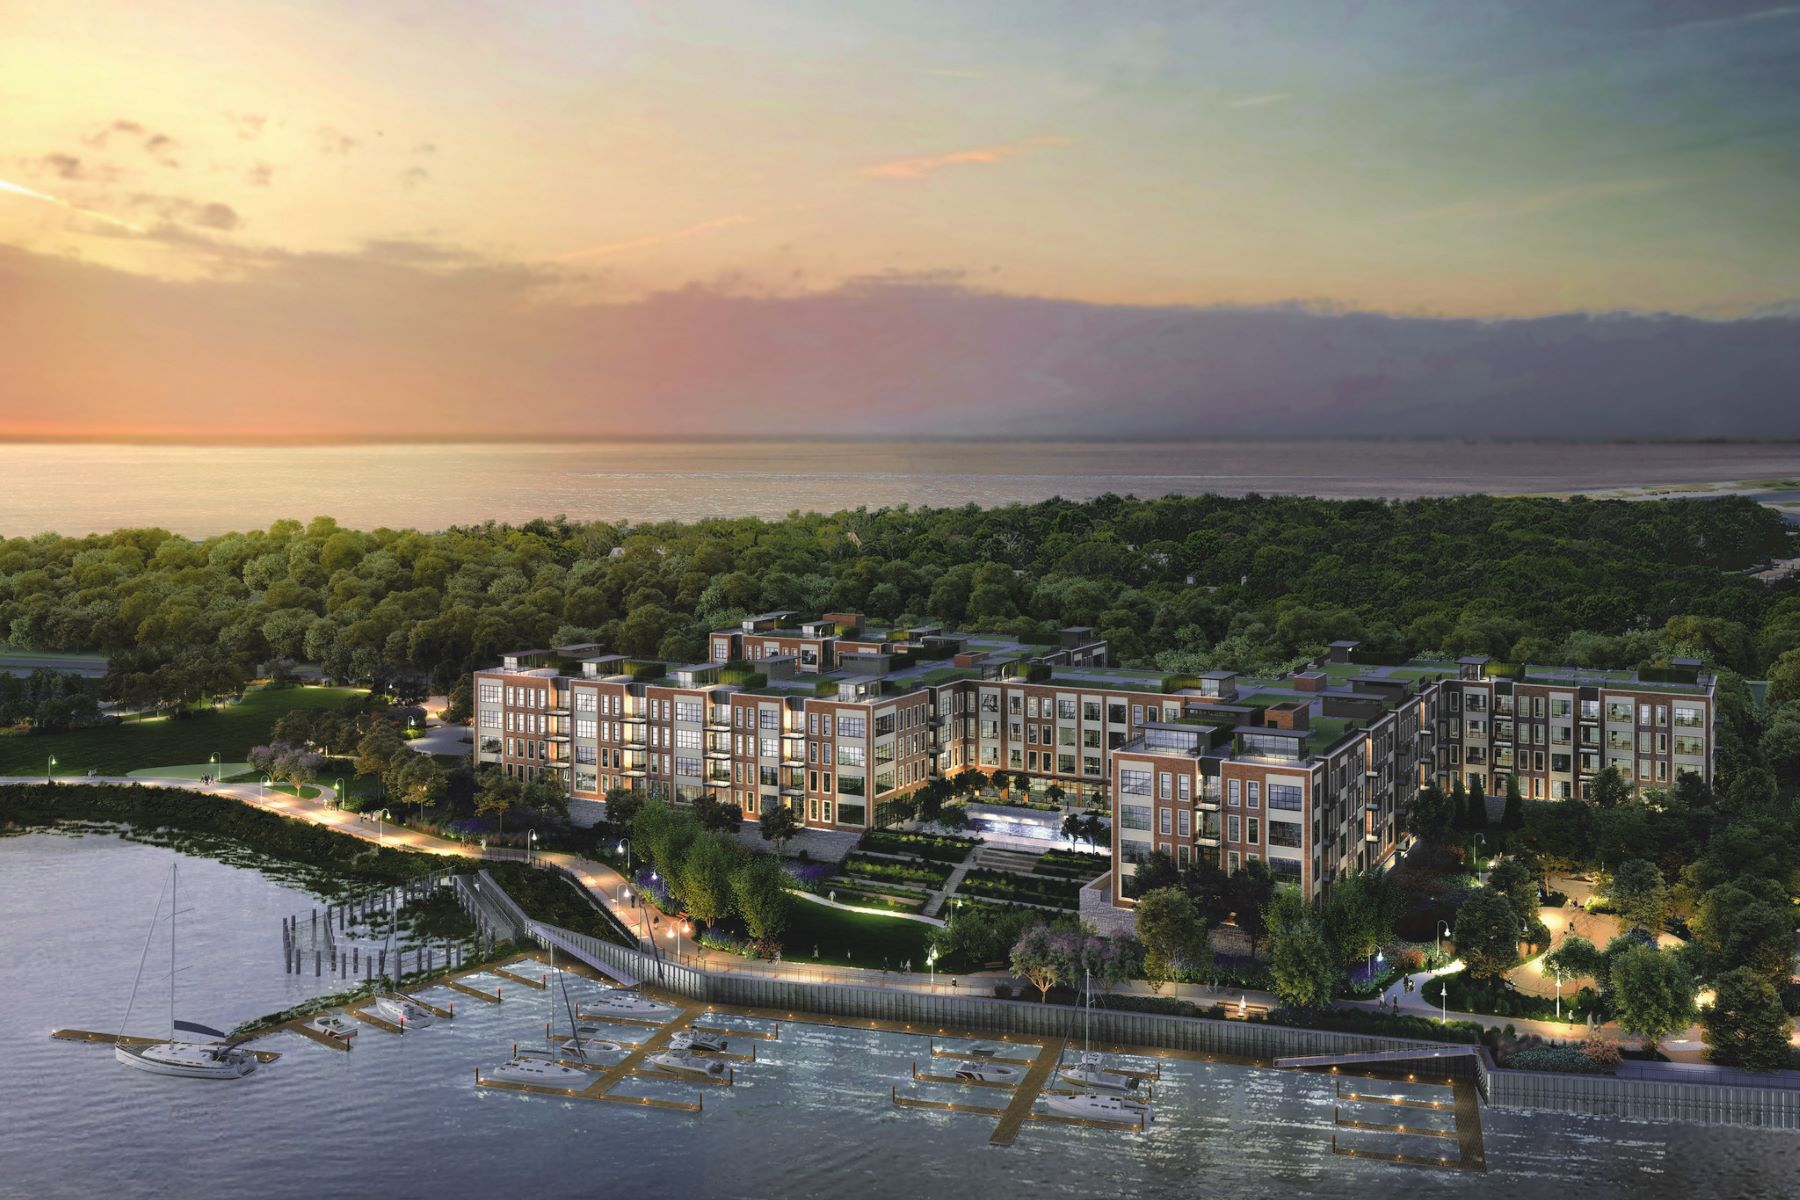 Condominiums for Active at 100 Garvies Point Rd , 1309, Glen Cove, NY 11542 100 Garvies Point Rd 1309 Glen Cove, New York 11542 United States